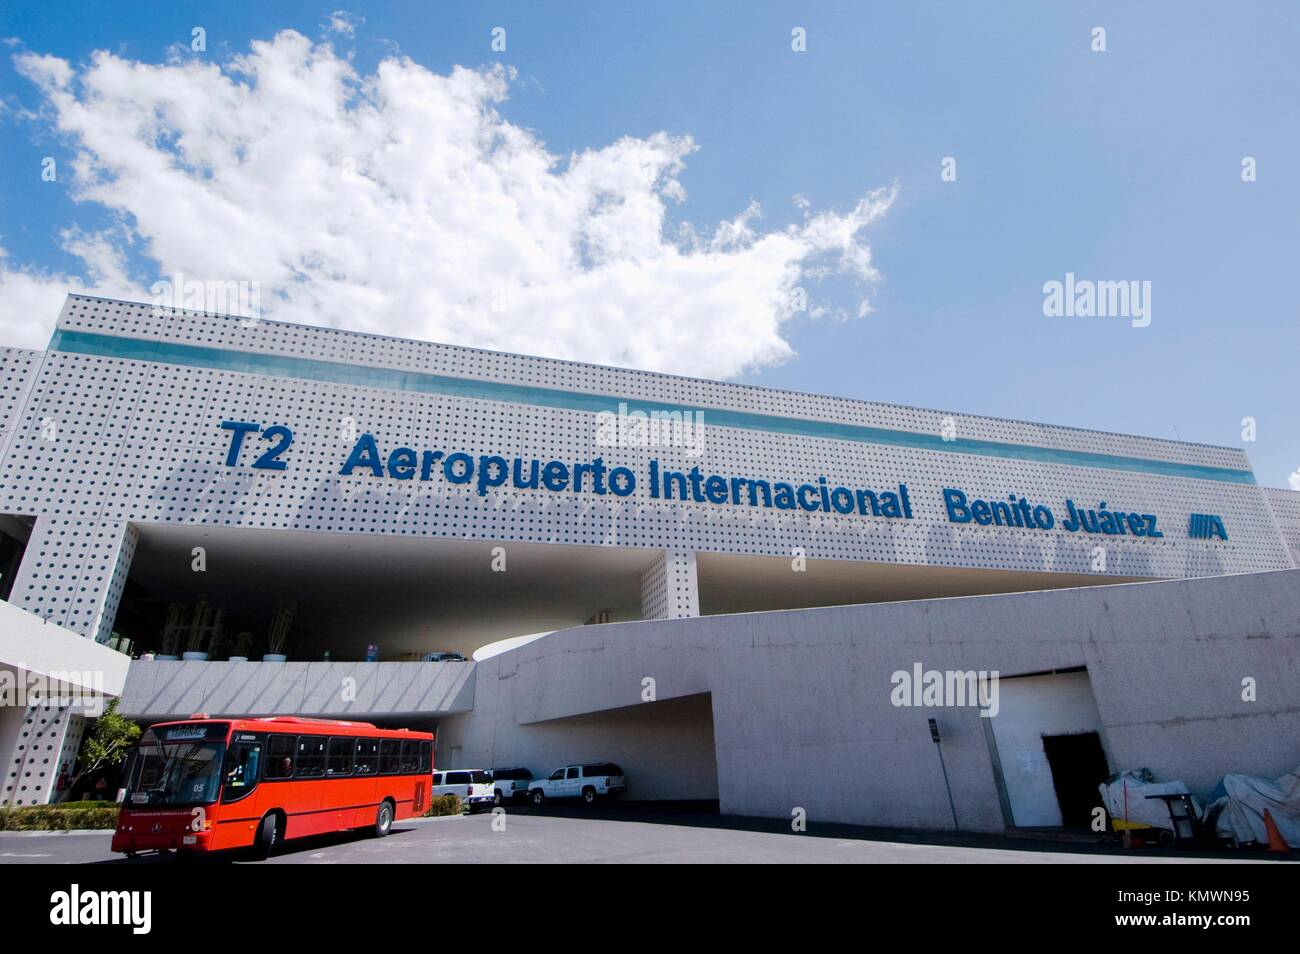 Arrival Airport Mexico Stock Photos Arrival Airport Mexico Stock - Airports in mexico